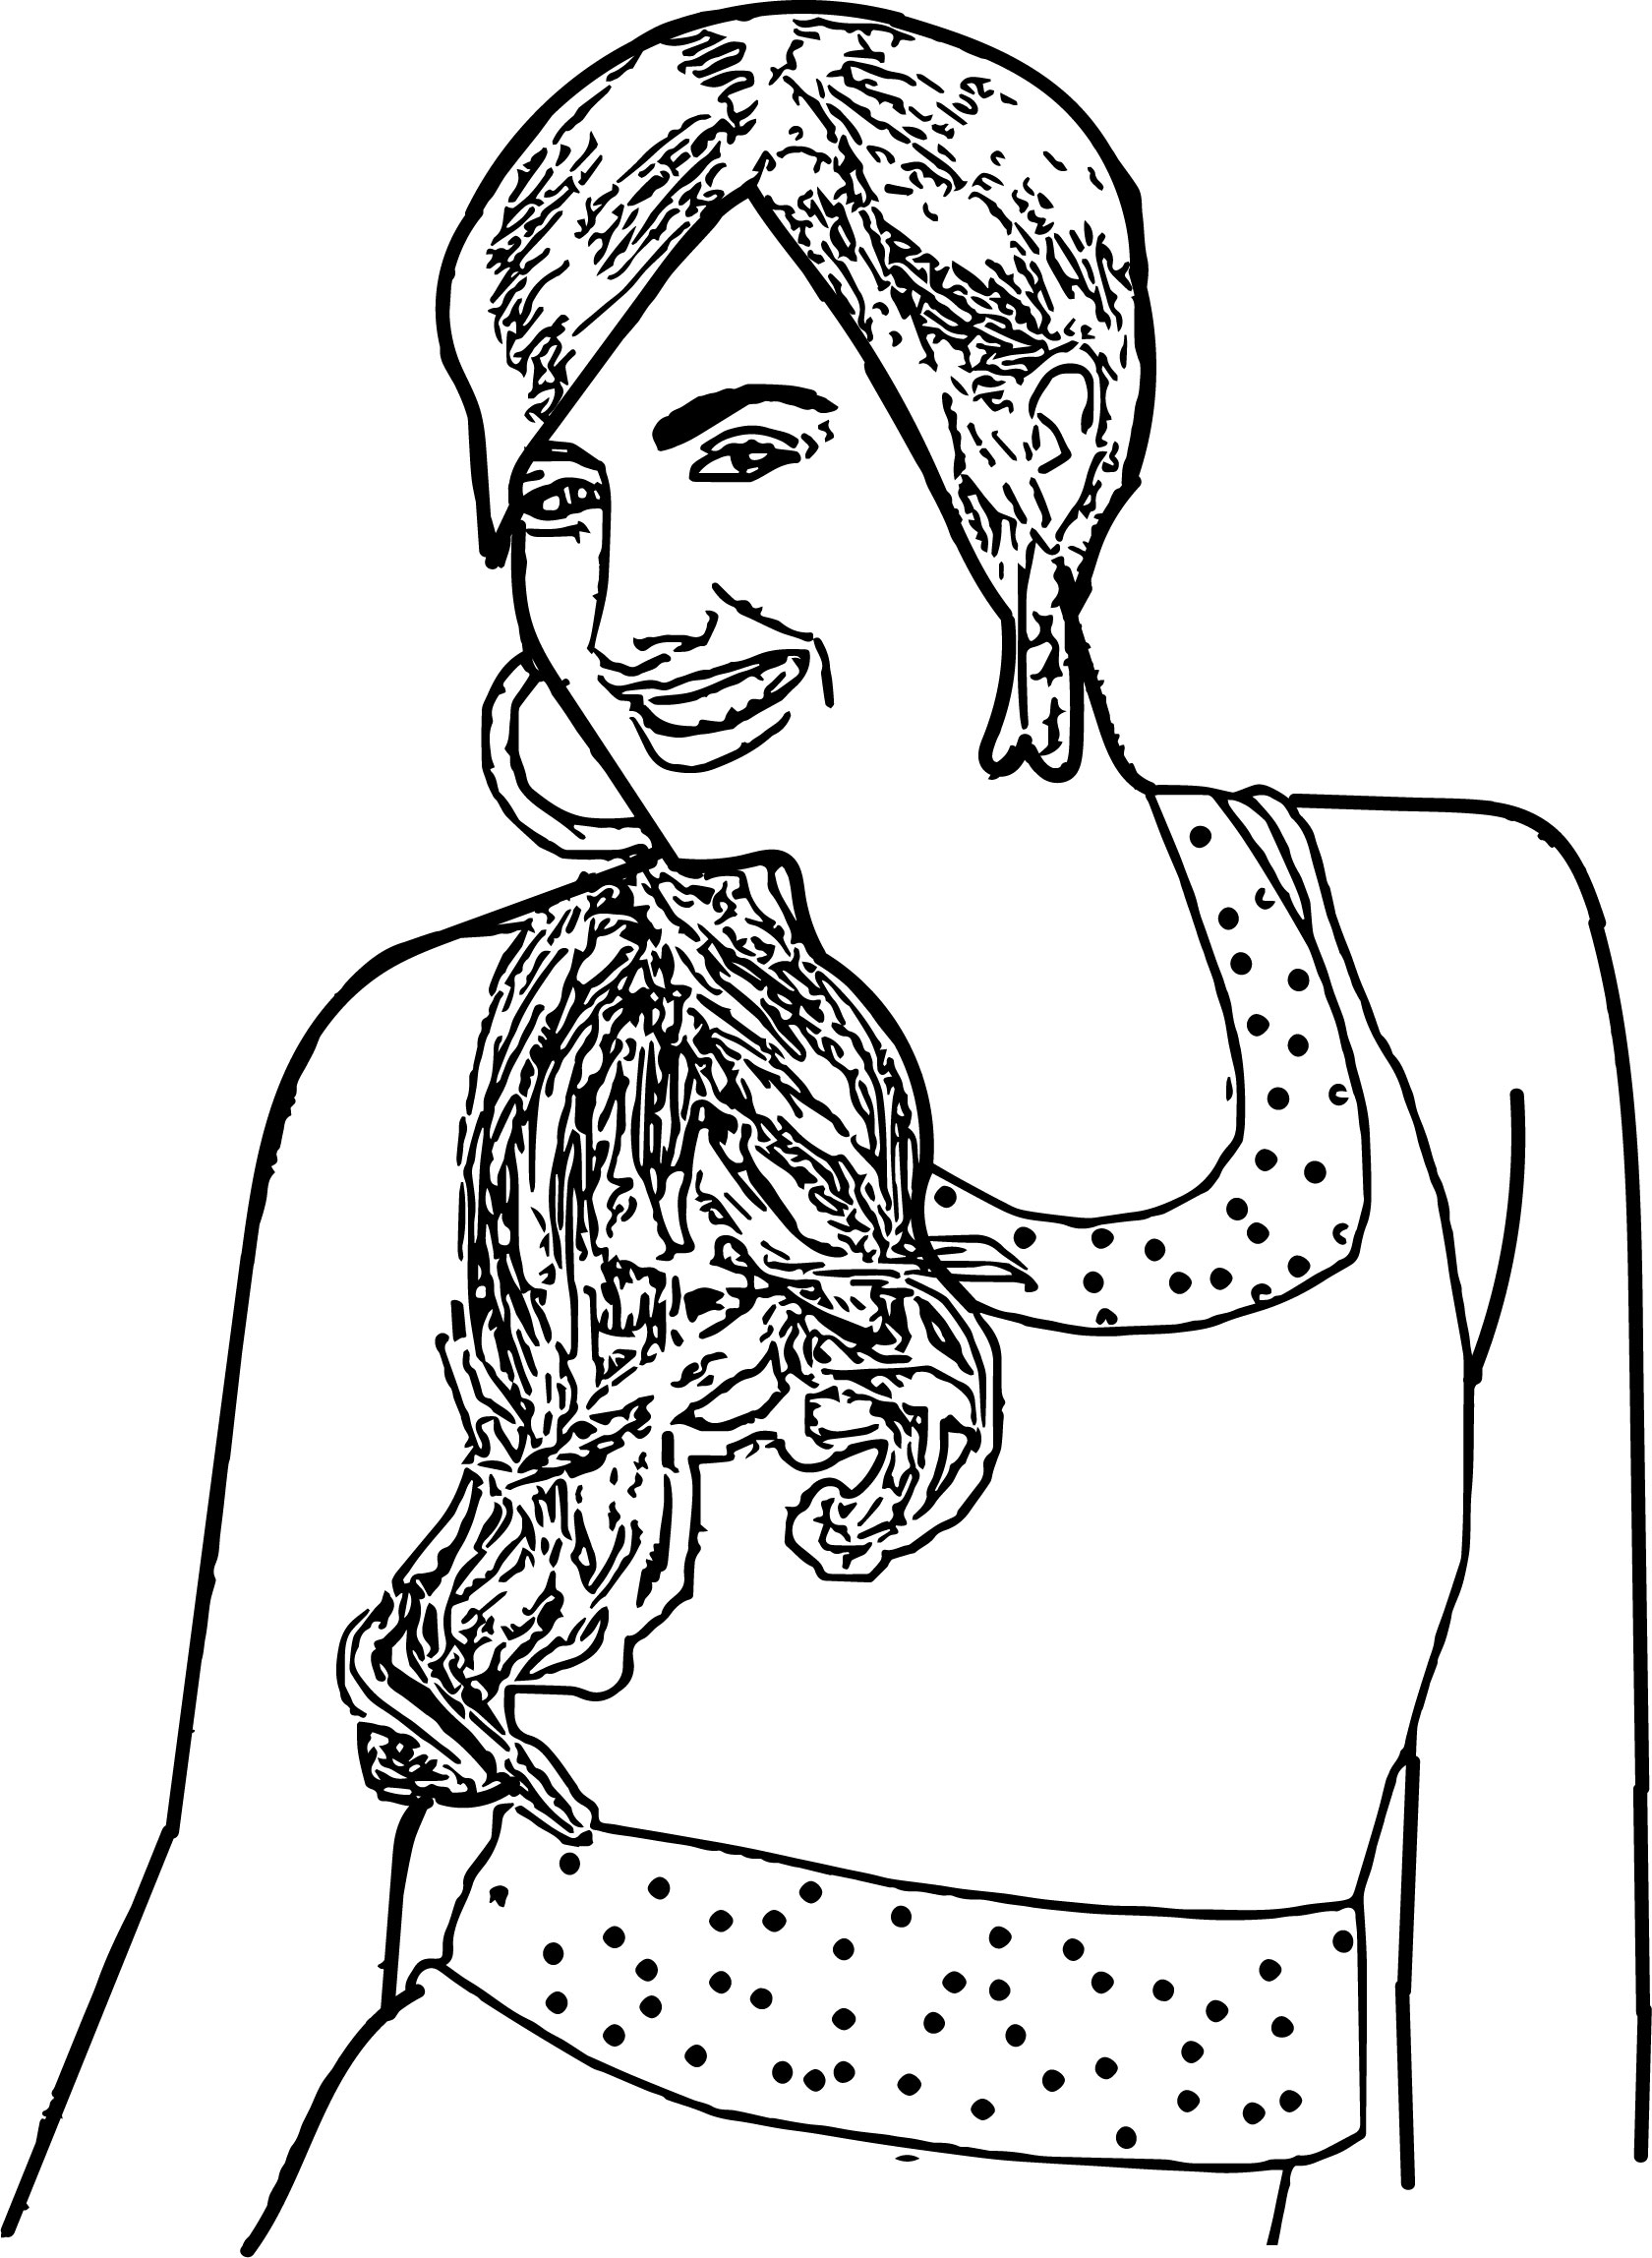 High School Musical Characters Sharpay Evans Coloring ...